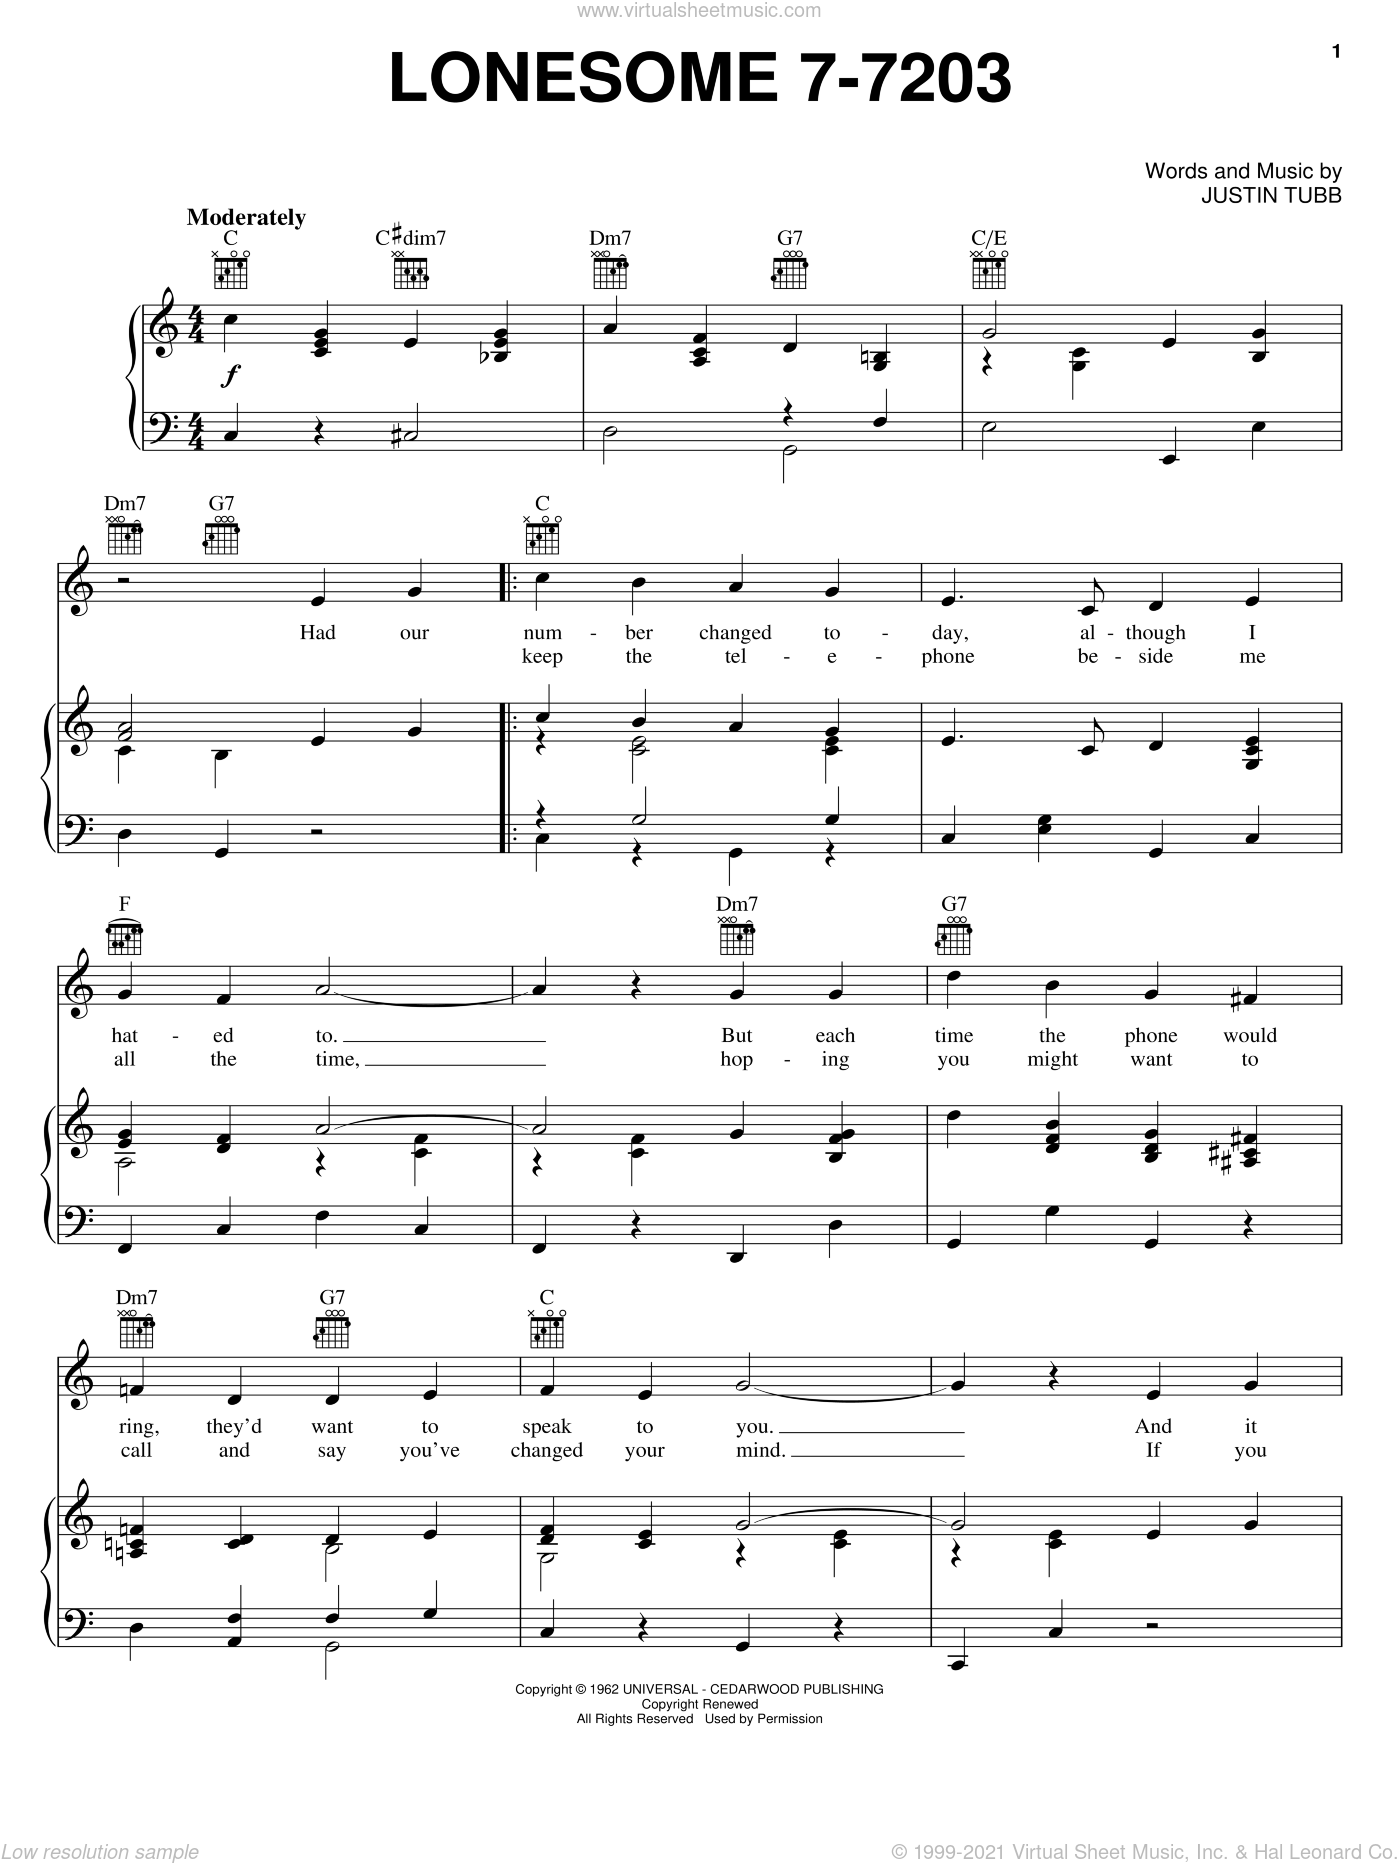 Lonesome 7-7203 sheet music for voice, piano or guitar by Hawkshaw Hawkins and Justin Tubb, intermediate skill level